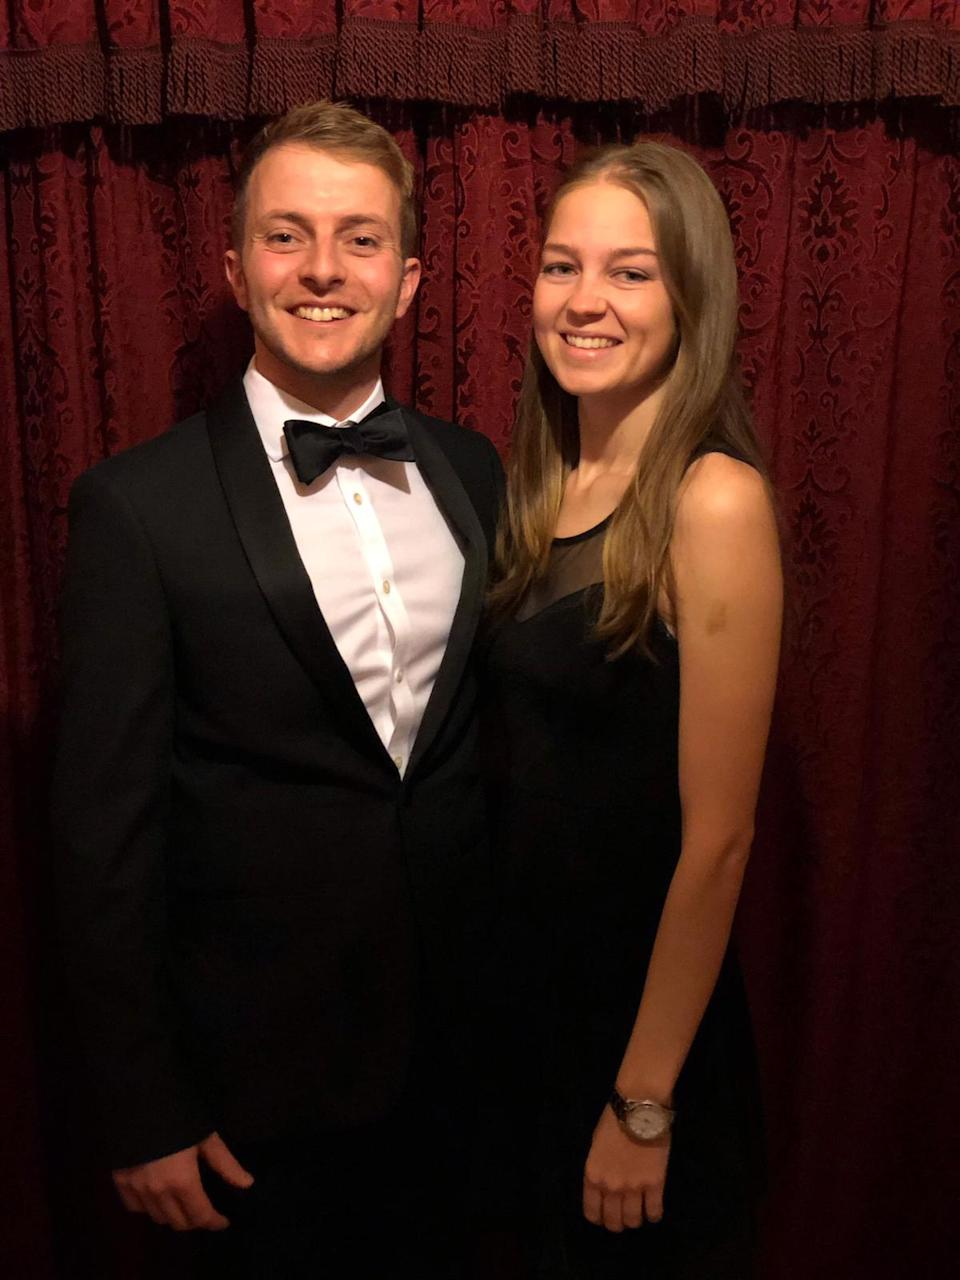 Emma Bond with pictured with her fiance, Edd Blake, in 2019.